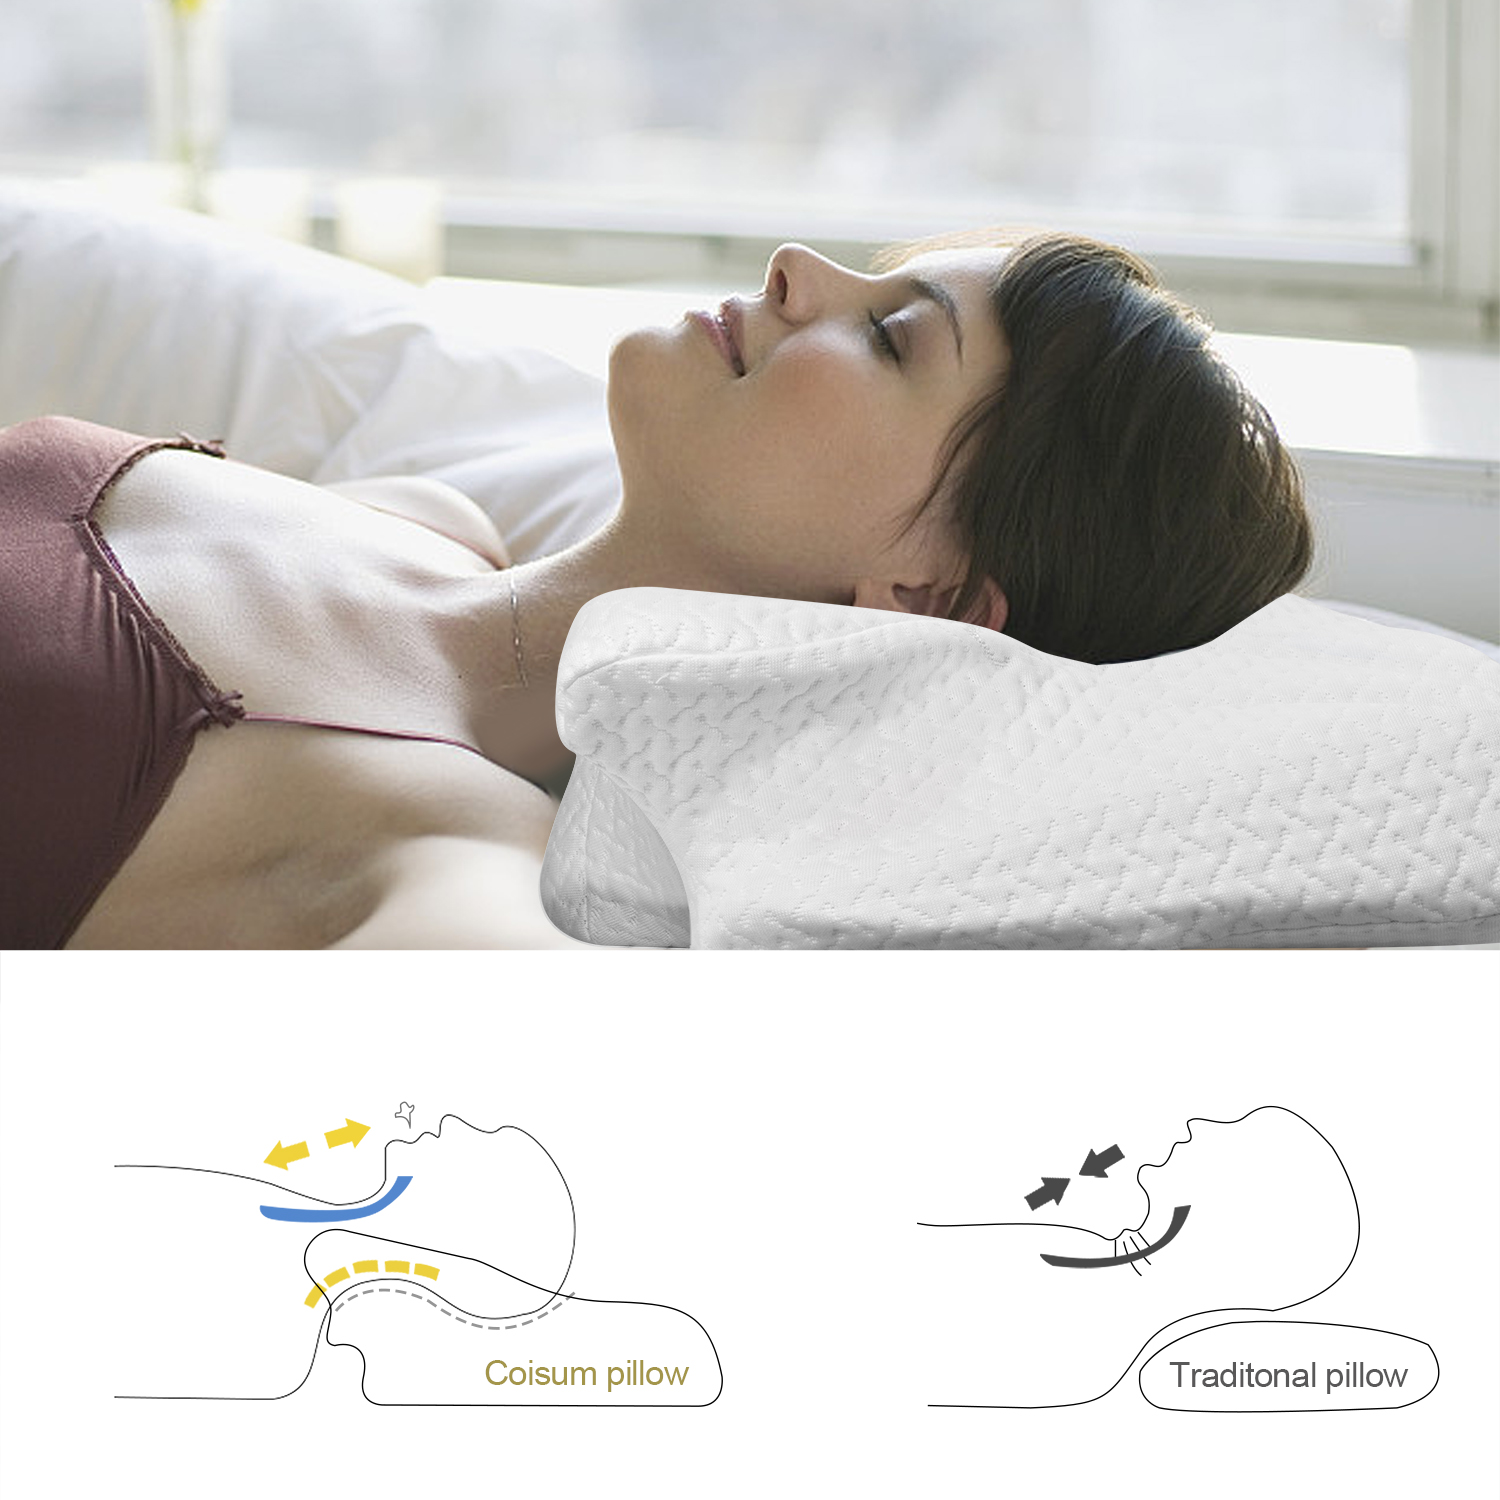 Image 3 - CPAP PillowMemory Foam Neck PillowMassage Ergonomic Anti snoring Sleeping Pillow Aid Bedding Supplies with Pillowcase-in Sleep & Snoring from Beauty & Health